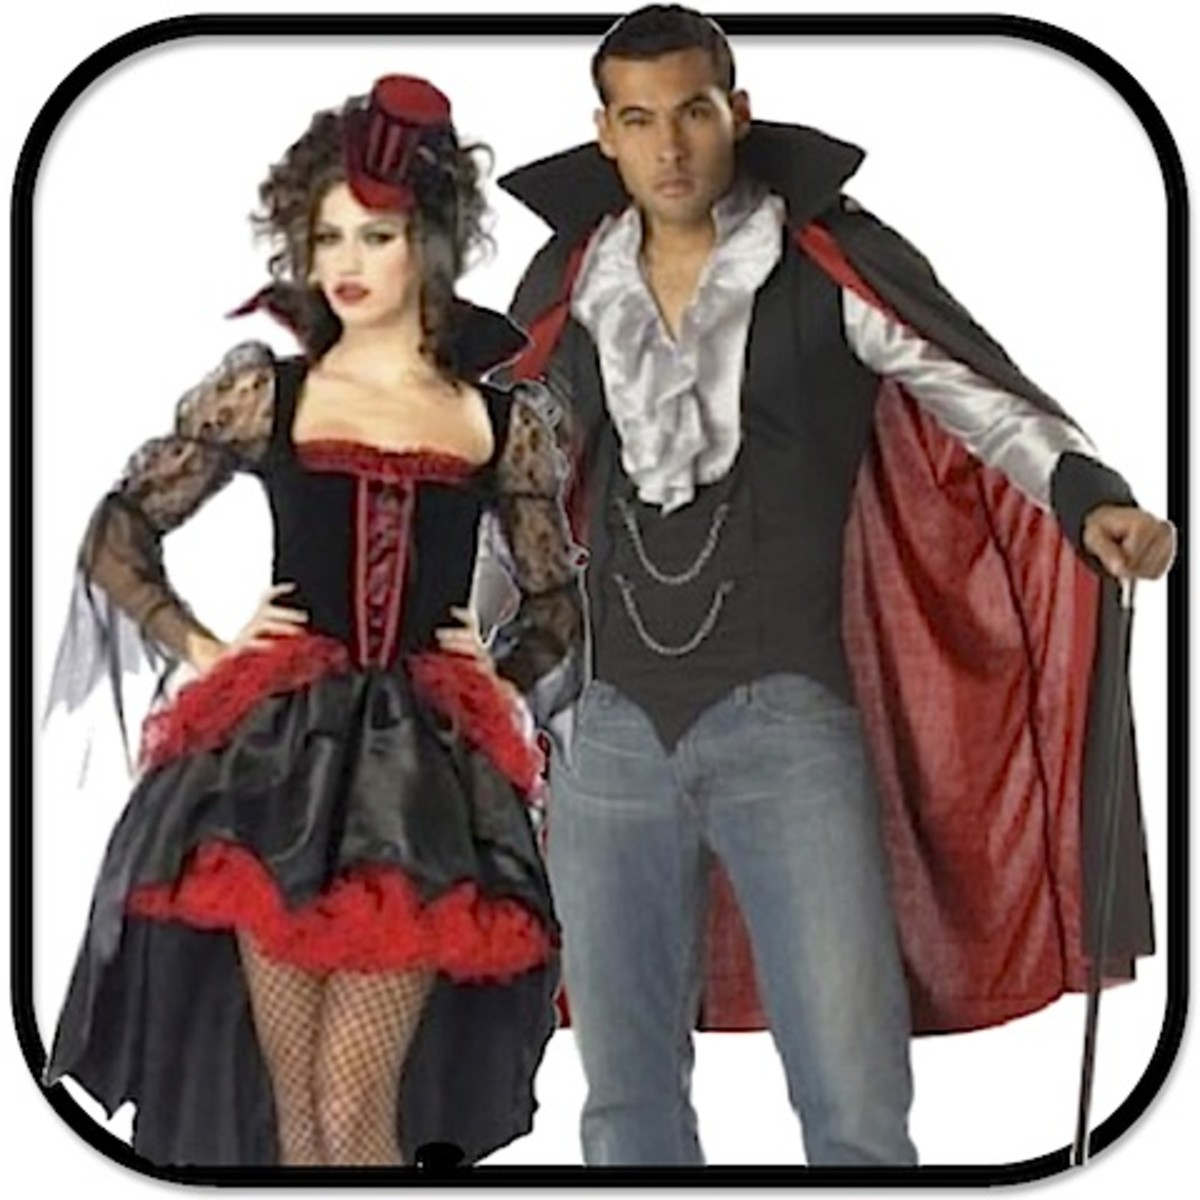 Halloween & Cosplay Costumes For Couples